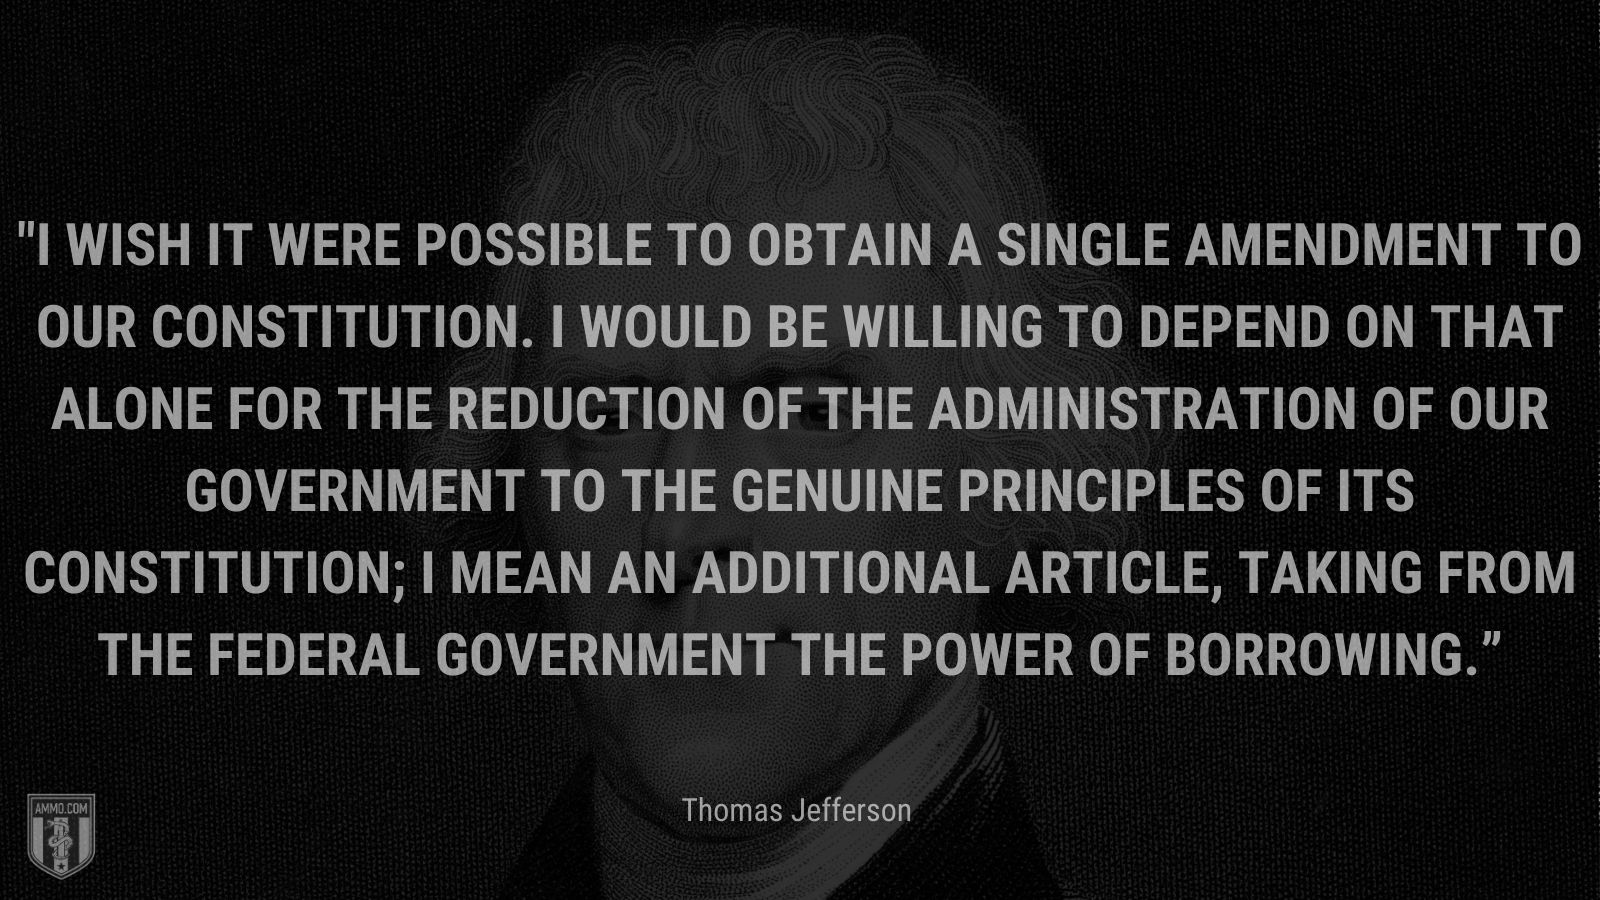 """""""I wish it were possible to obtain a single amendment to our constitution. I would be willing to depend on that alone for the reduction of the administration of our government to the genuine principles of its constitution; I mean an additional article, taking from the federal government the power of borrowing."""" - Thomas Jefferson"""